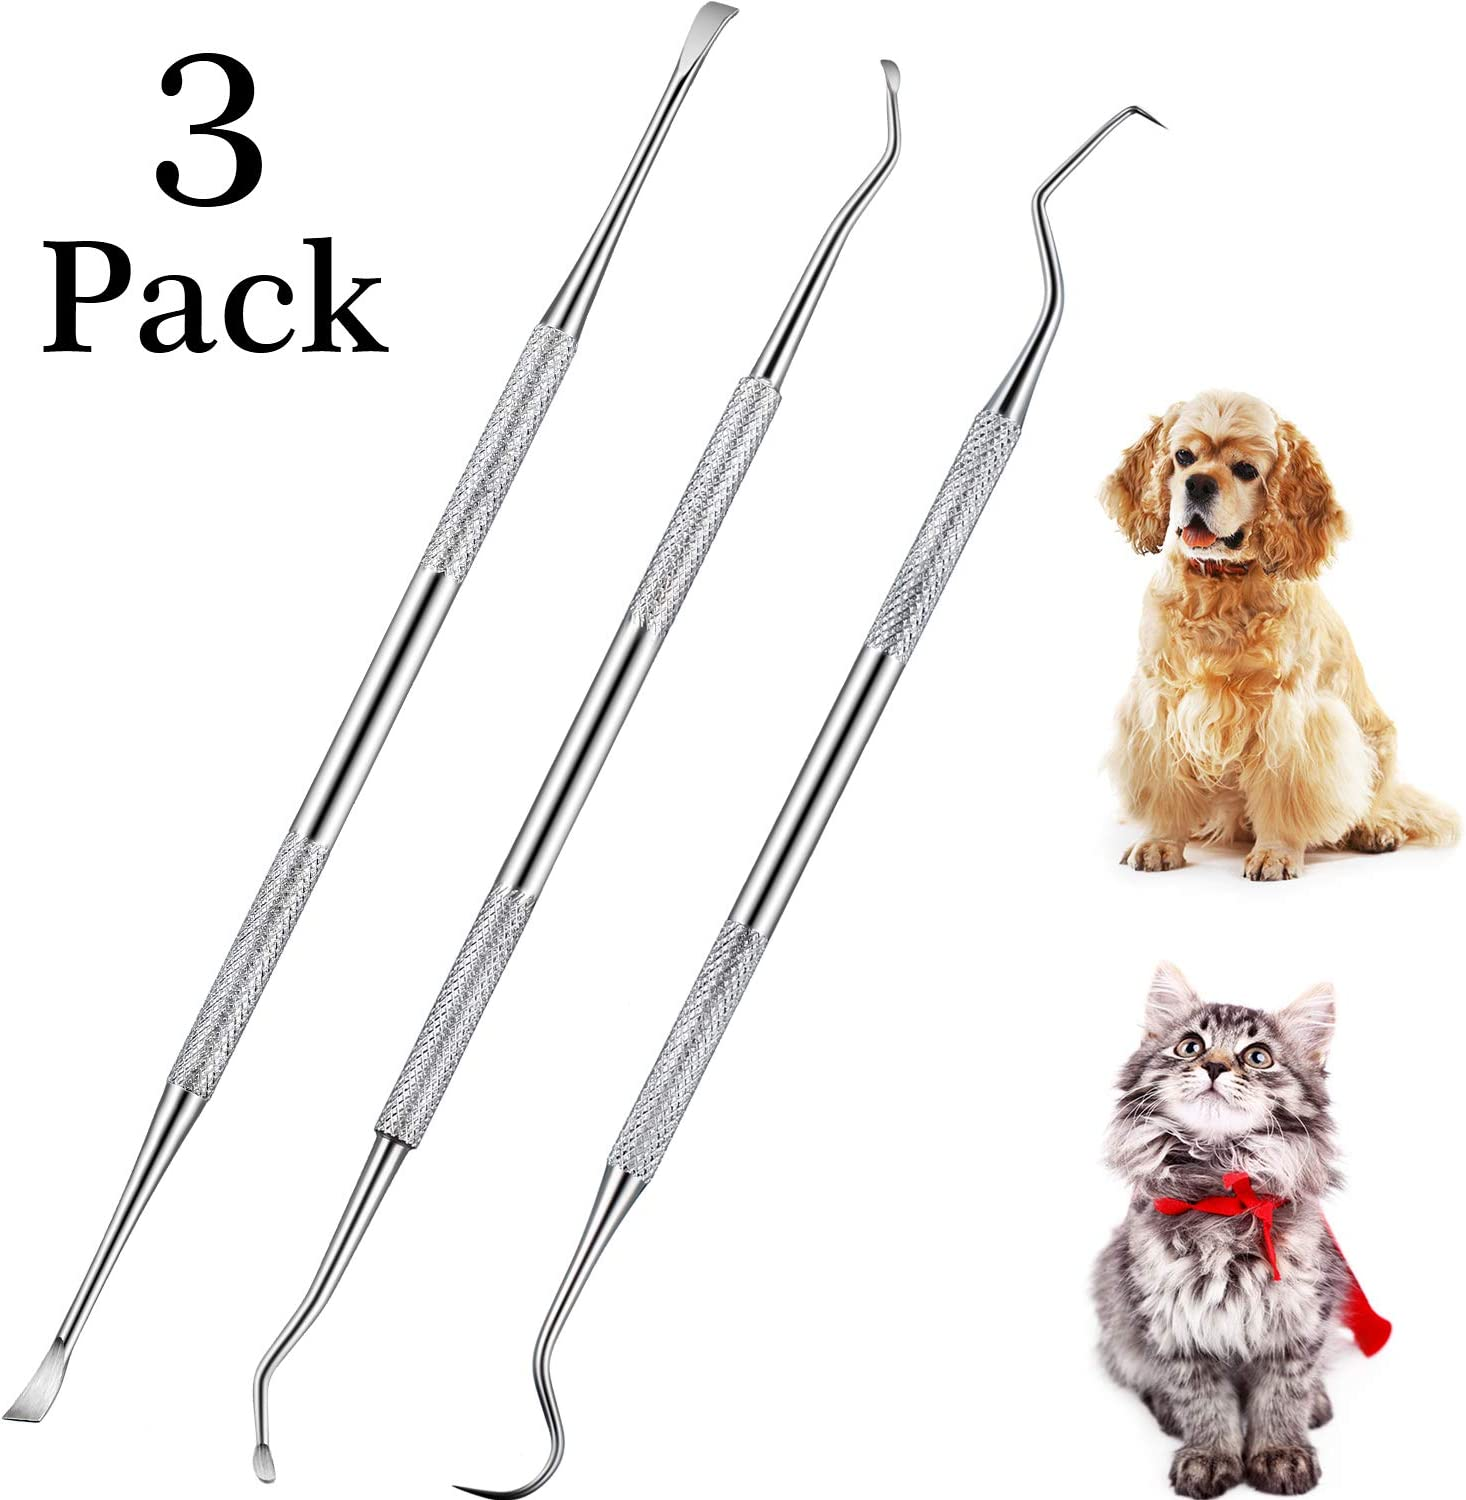 Dog Dental Tooth Scaler and Scraper Stainless Double Headed Tarter Remover Scraper Pet Teeth Cleaning Tools for Dog and Cat (3)